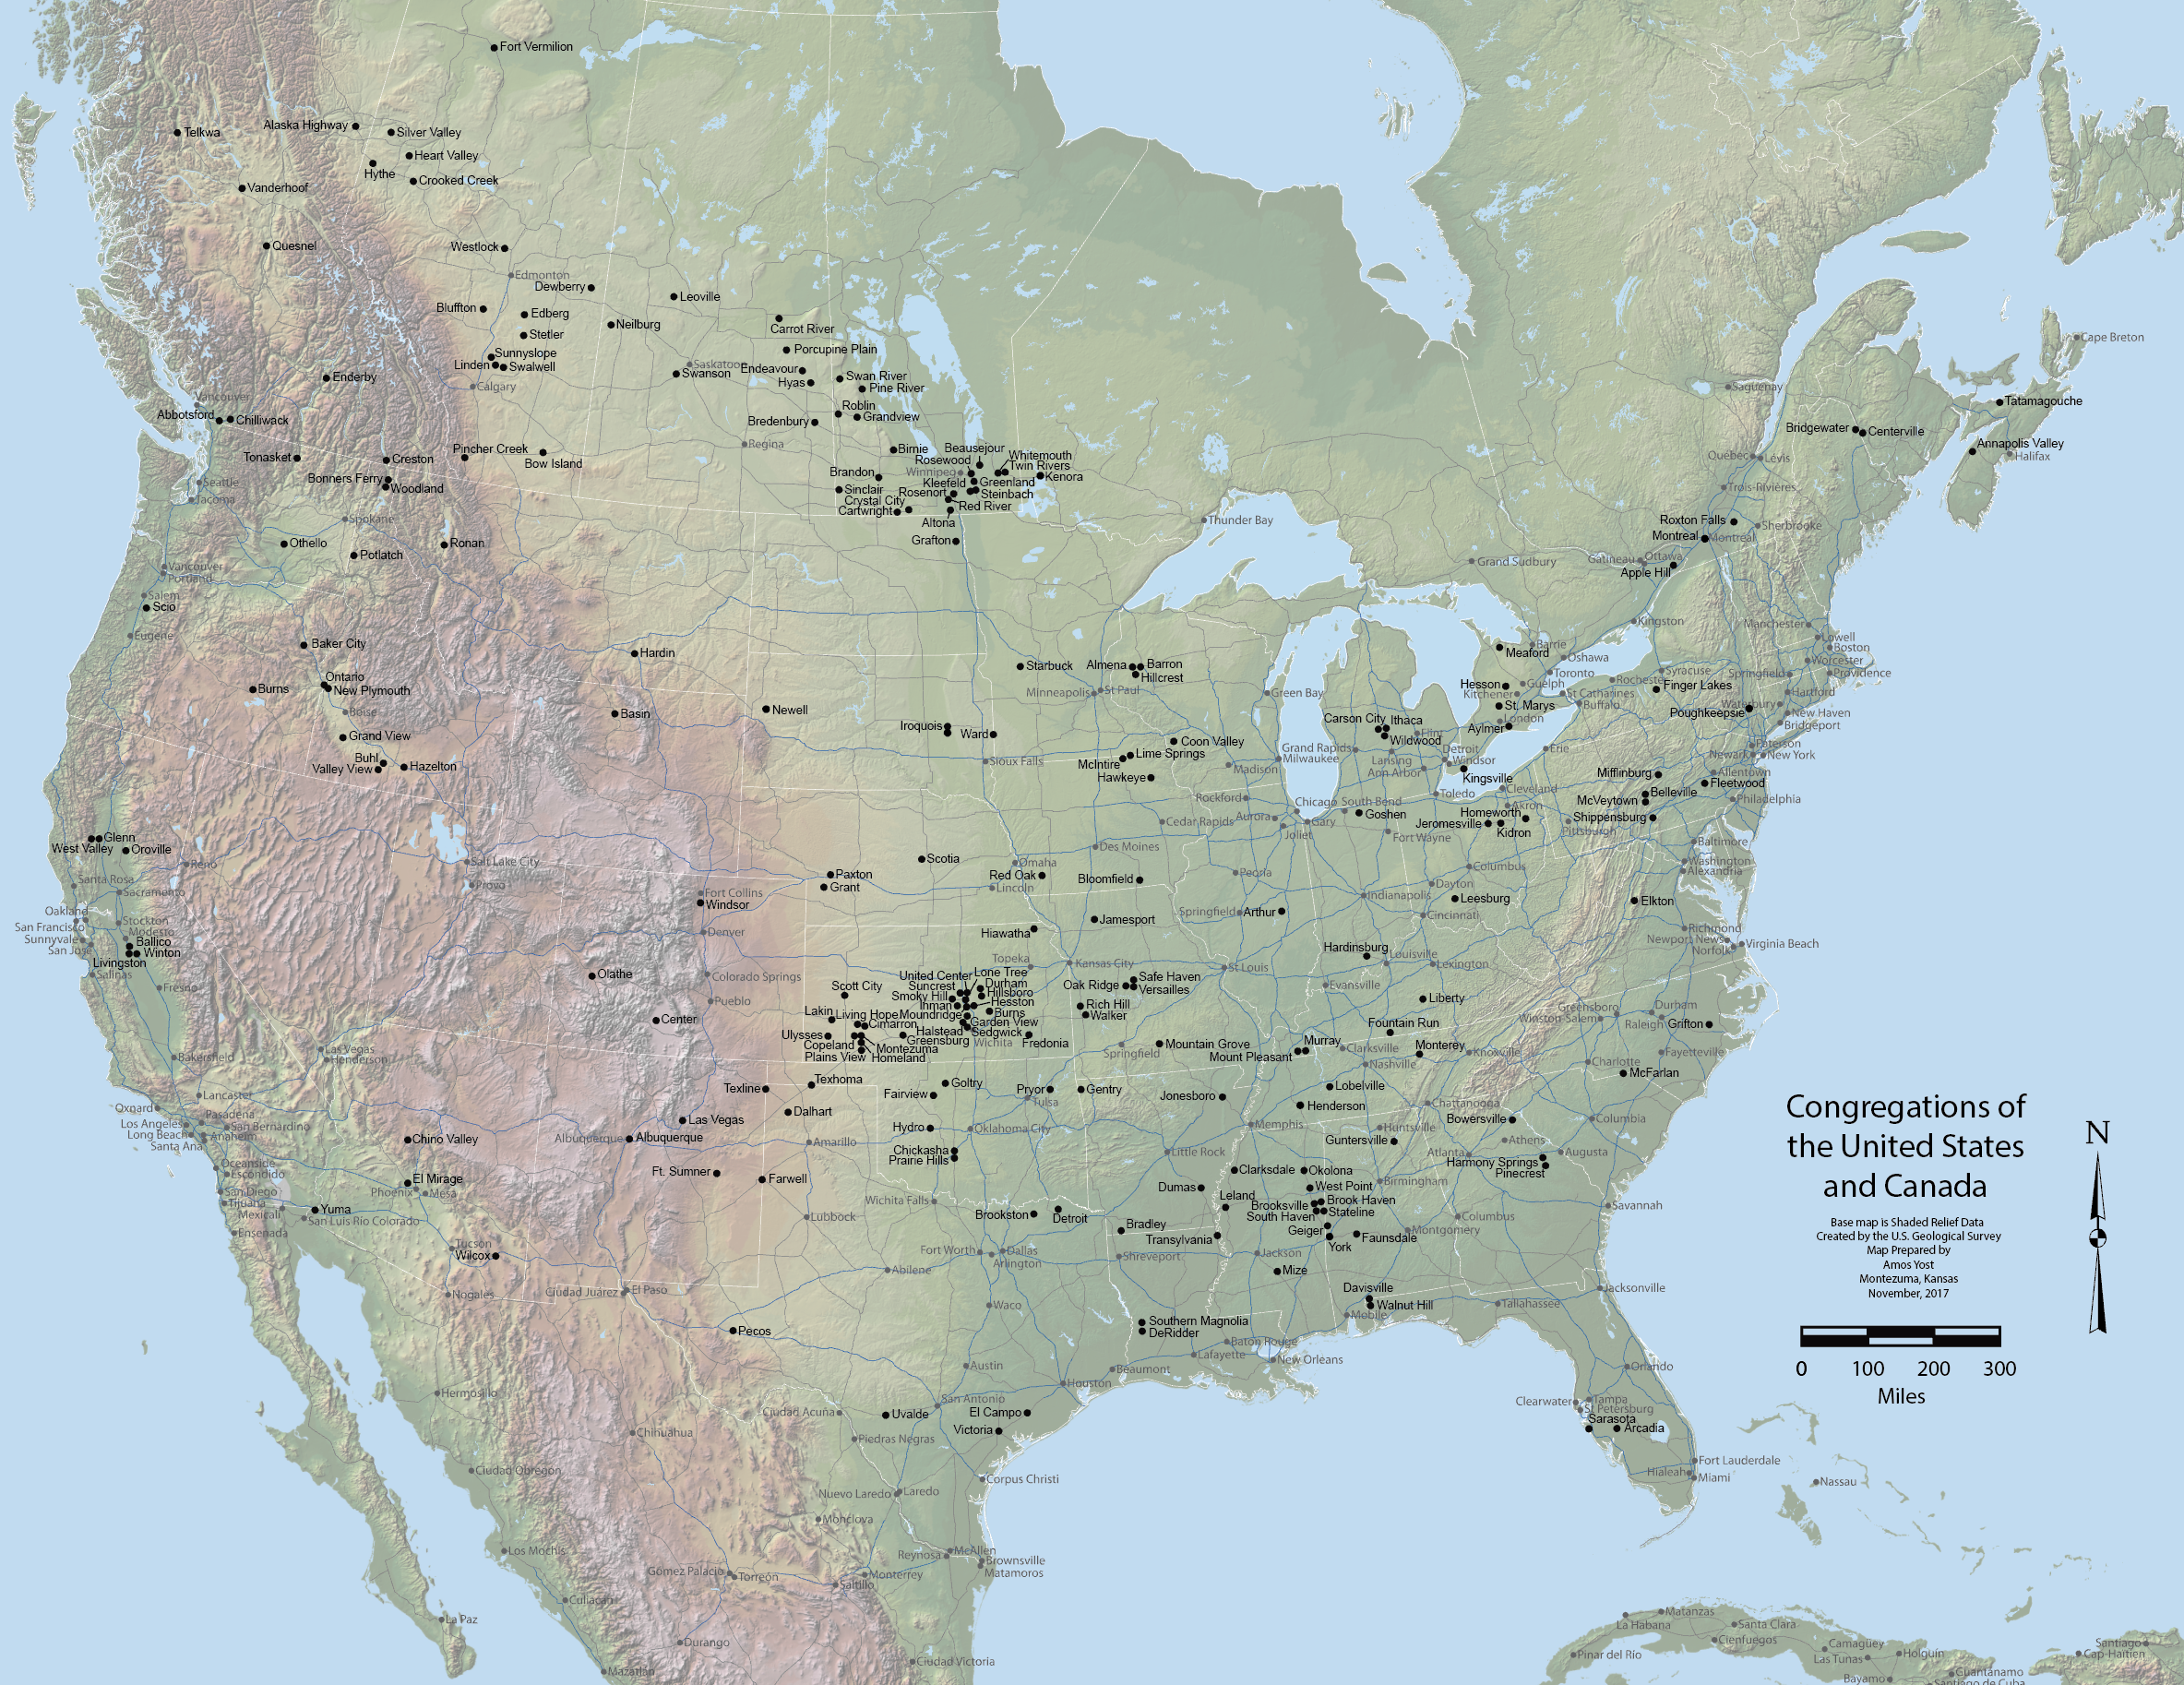 Map Showing U.S.And Canada Wall Map, Congregations of the United States and Canada | Gospel